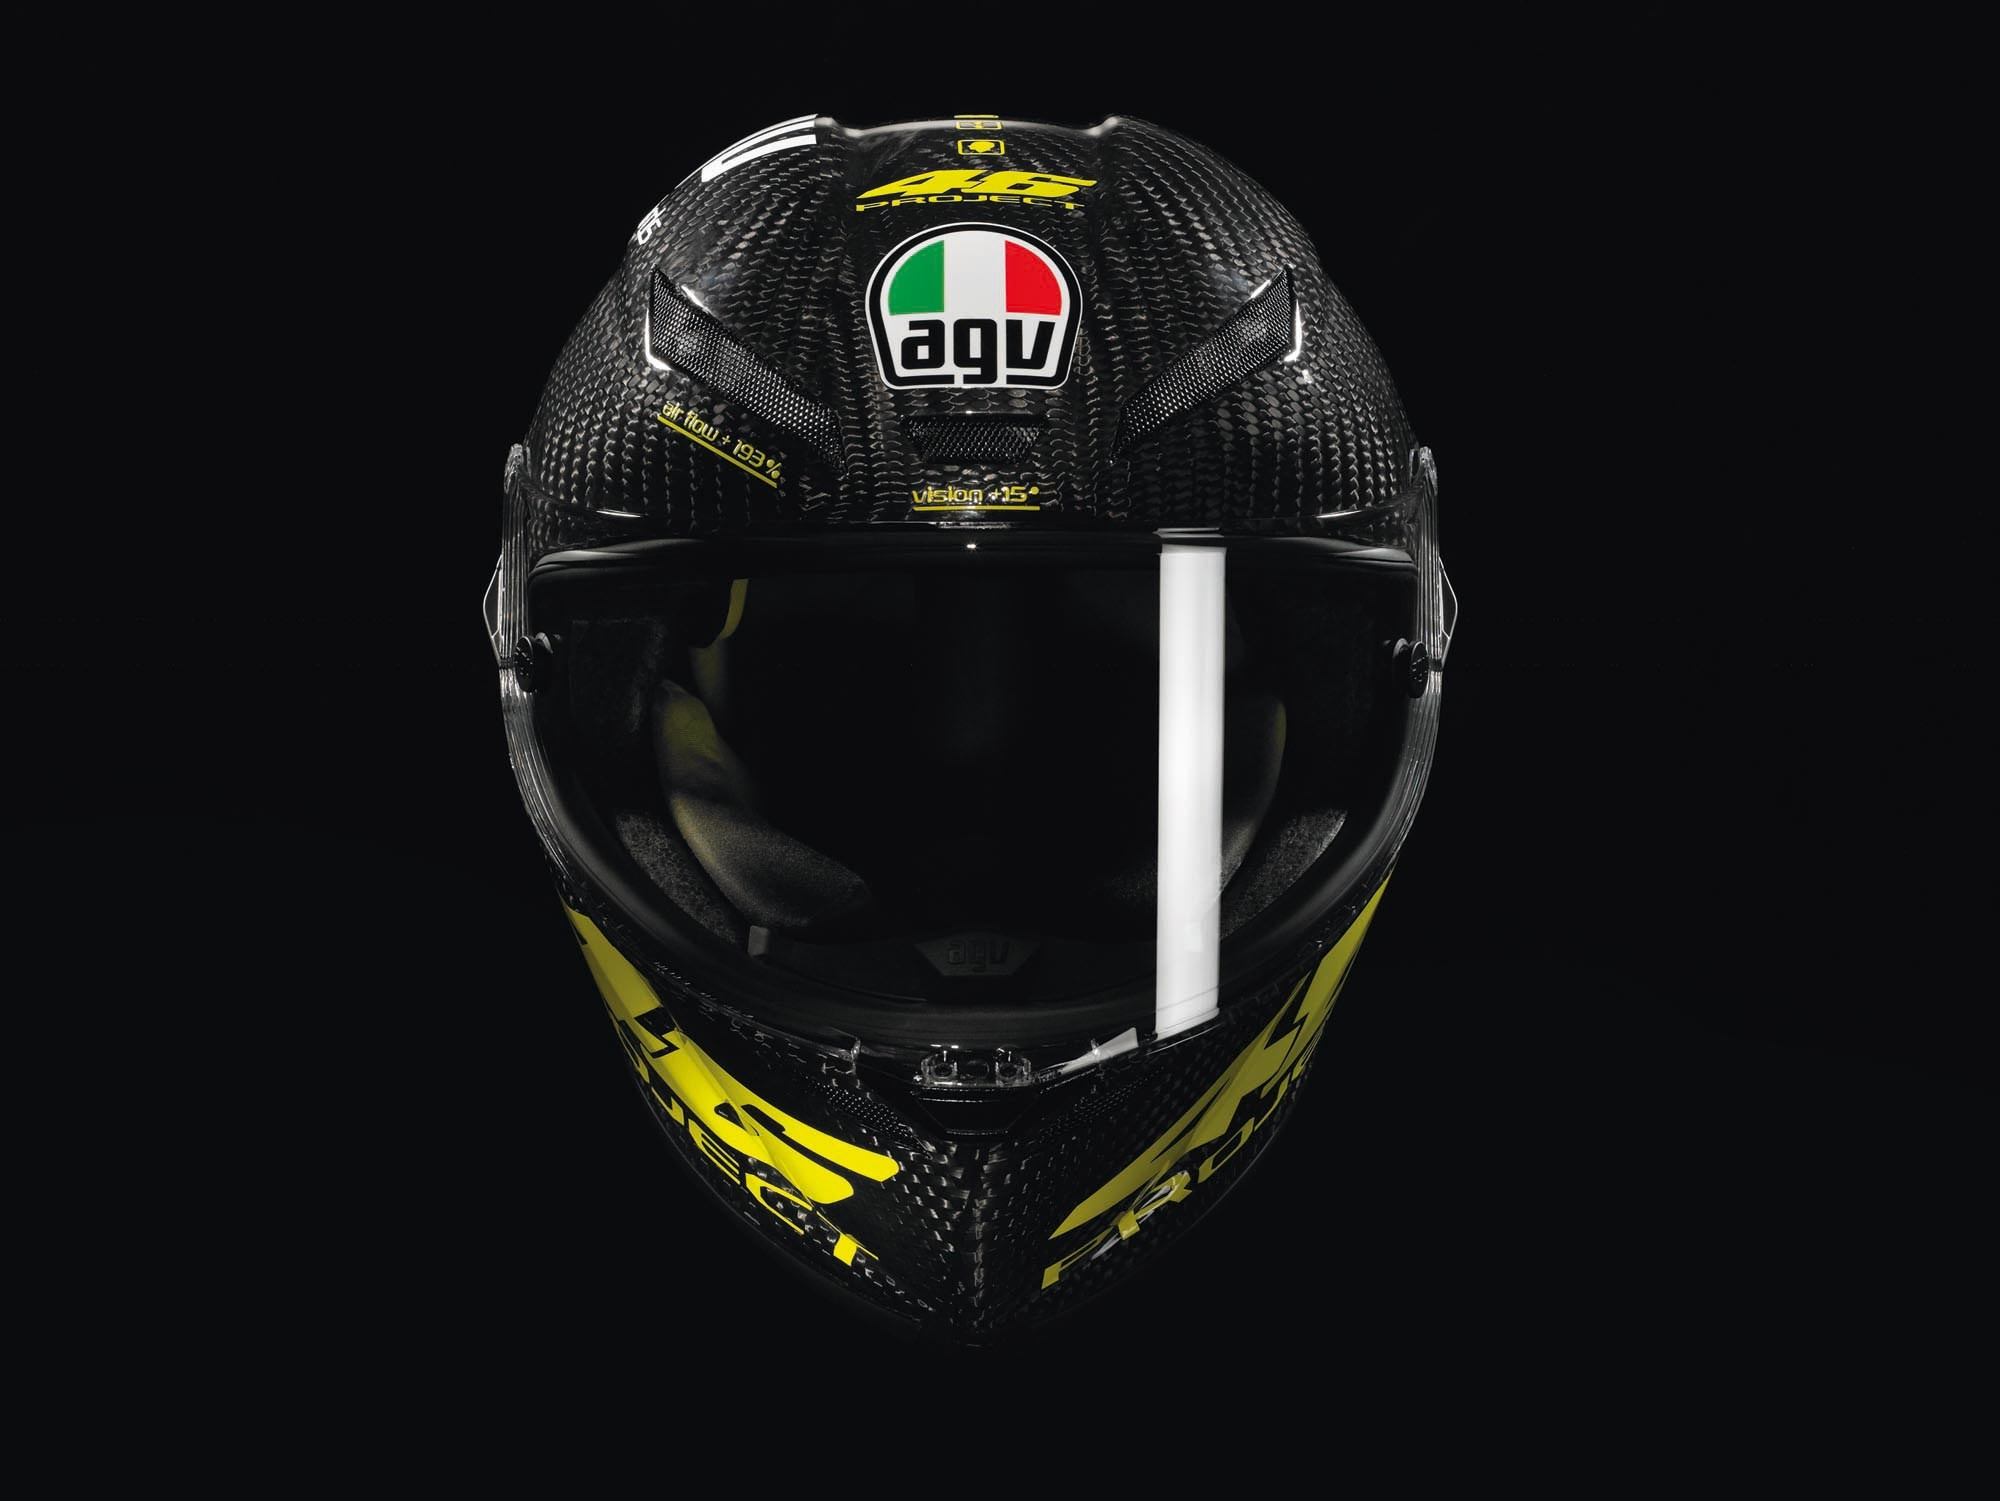 … edition helmet; who wore it best del rosario calls out the agv pistagp  asphalt …